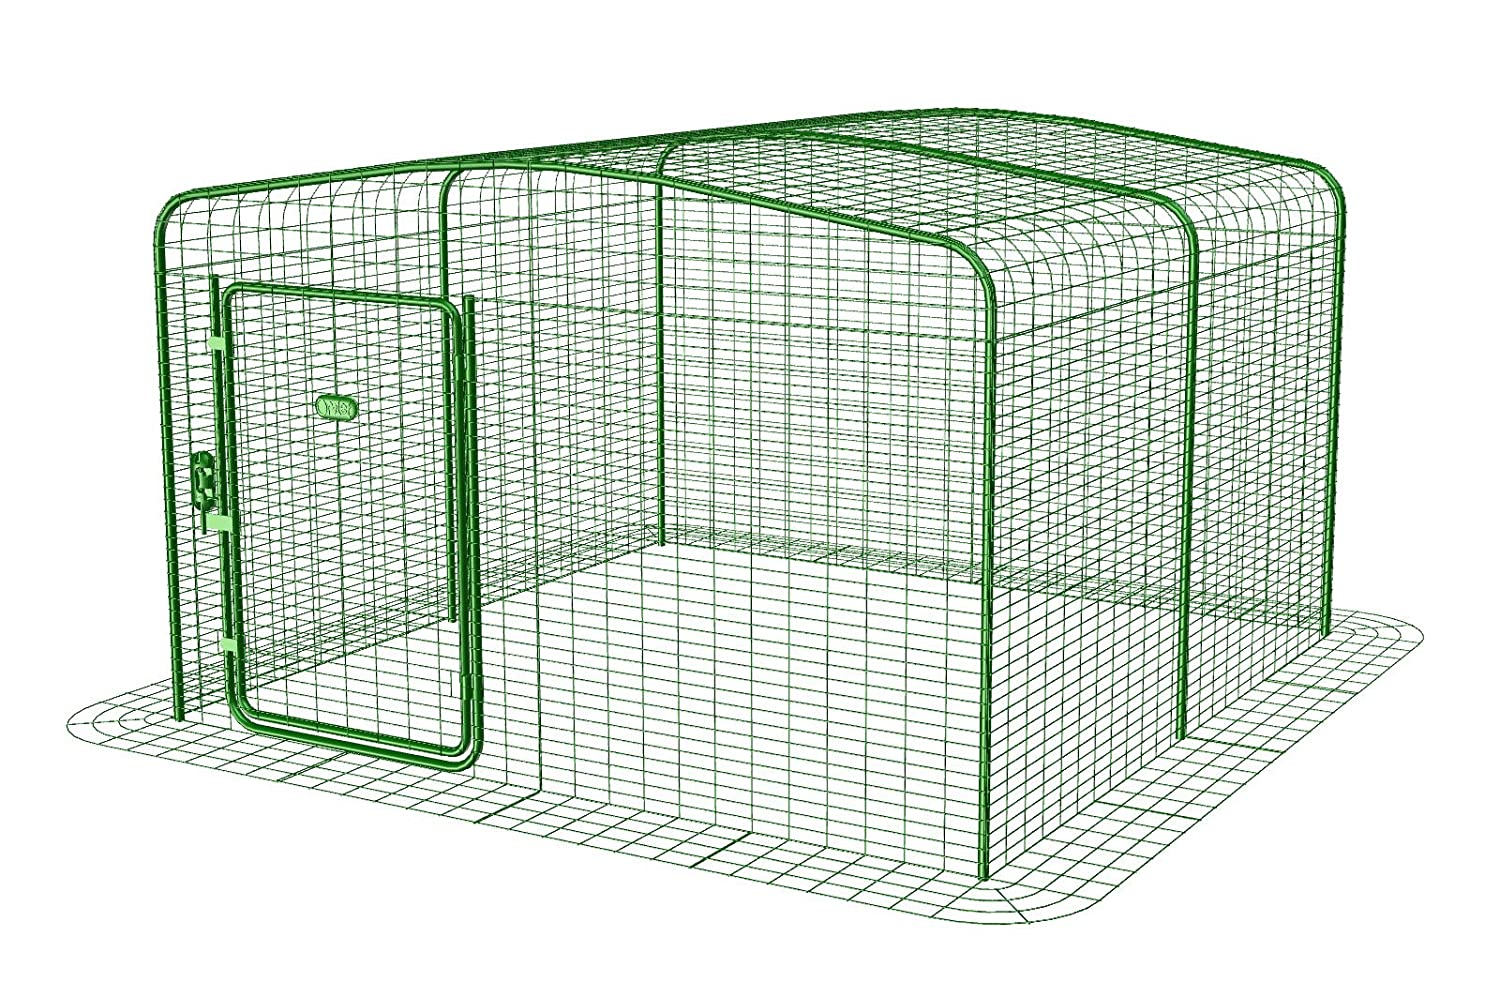 Omlet Walk in Chicken/Poultry Run - Fully Enclosed, Secure Steel Mesh - Green - 1.8m x 1.8m x 1.15m